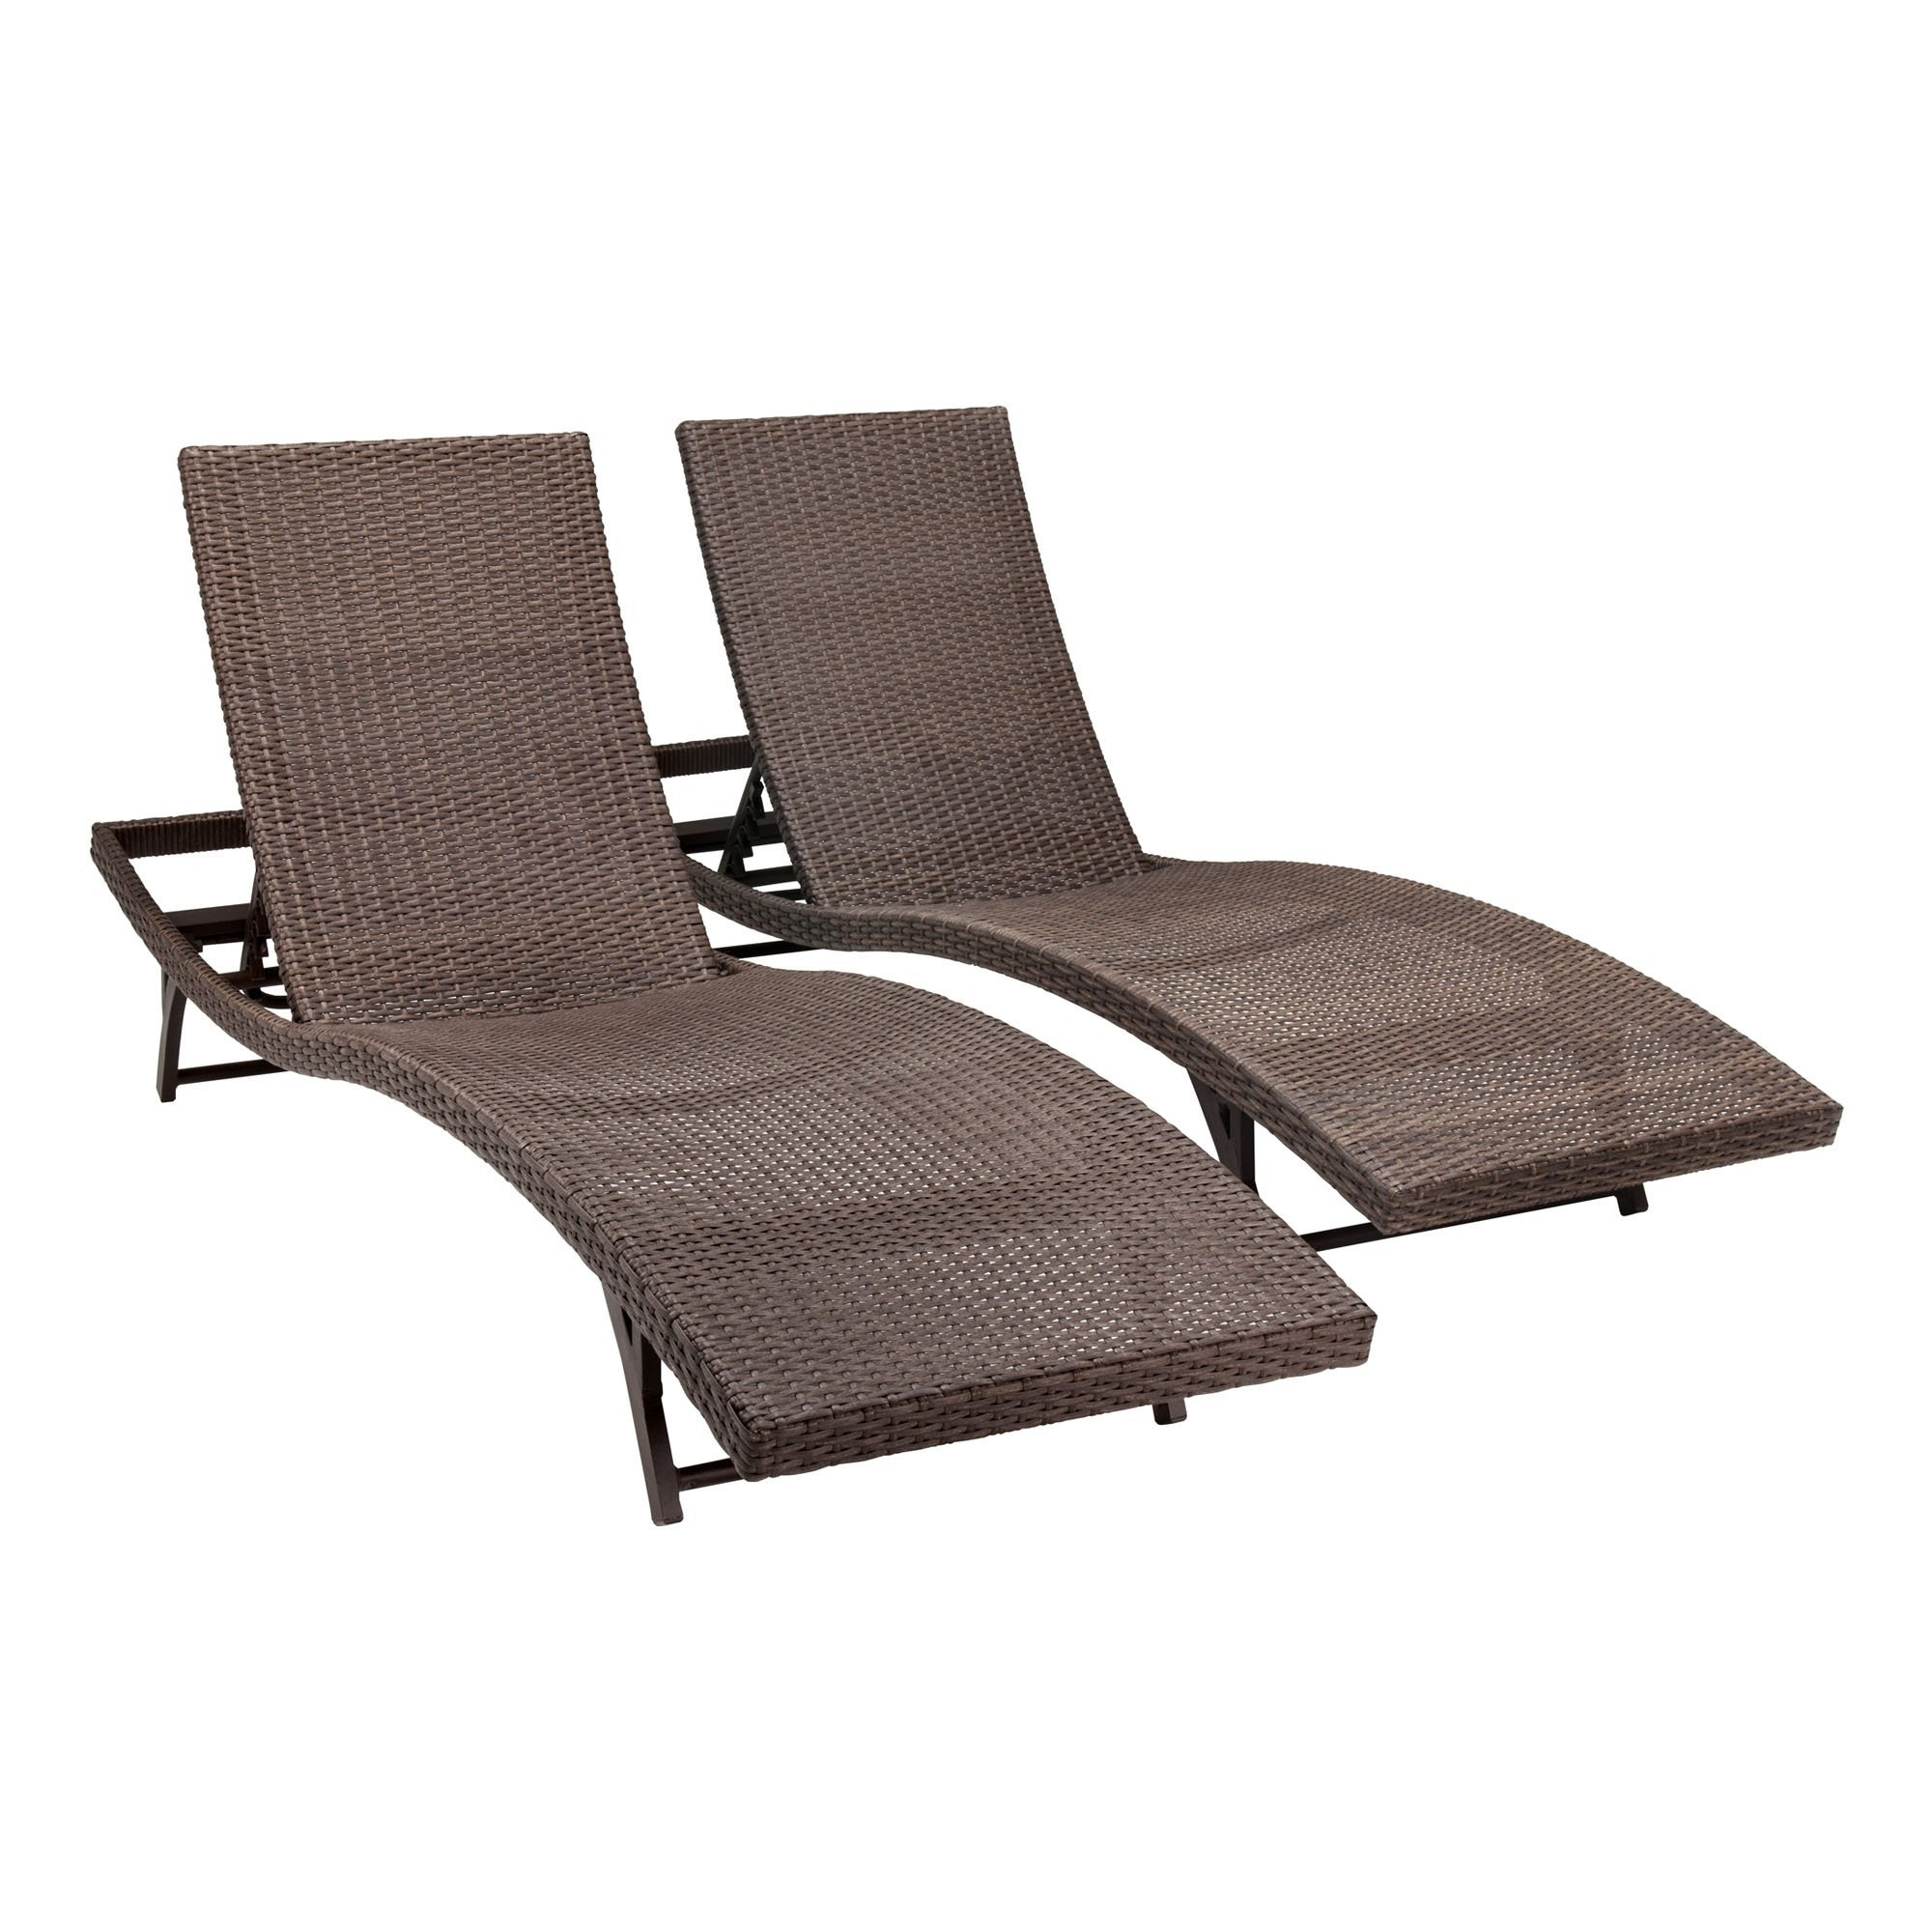 Favorite Outdoor : Cheap Lounge Chairs Vinyl Strap Chaise Lounge Home Depot Throughout Vinyl Outdoor Chaise Lounge Chairs (View 1 of 15)